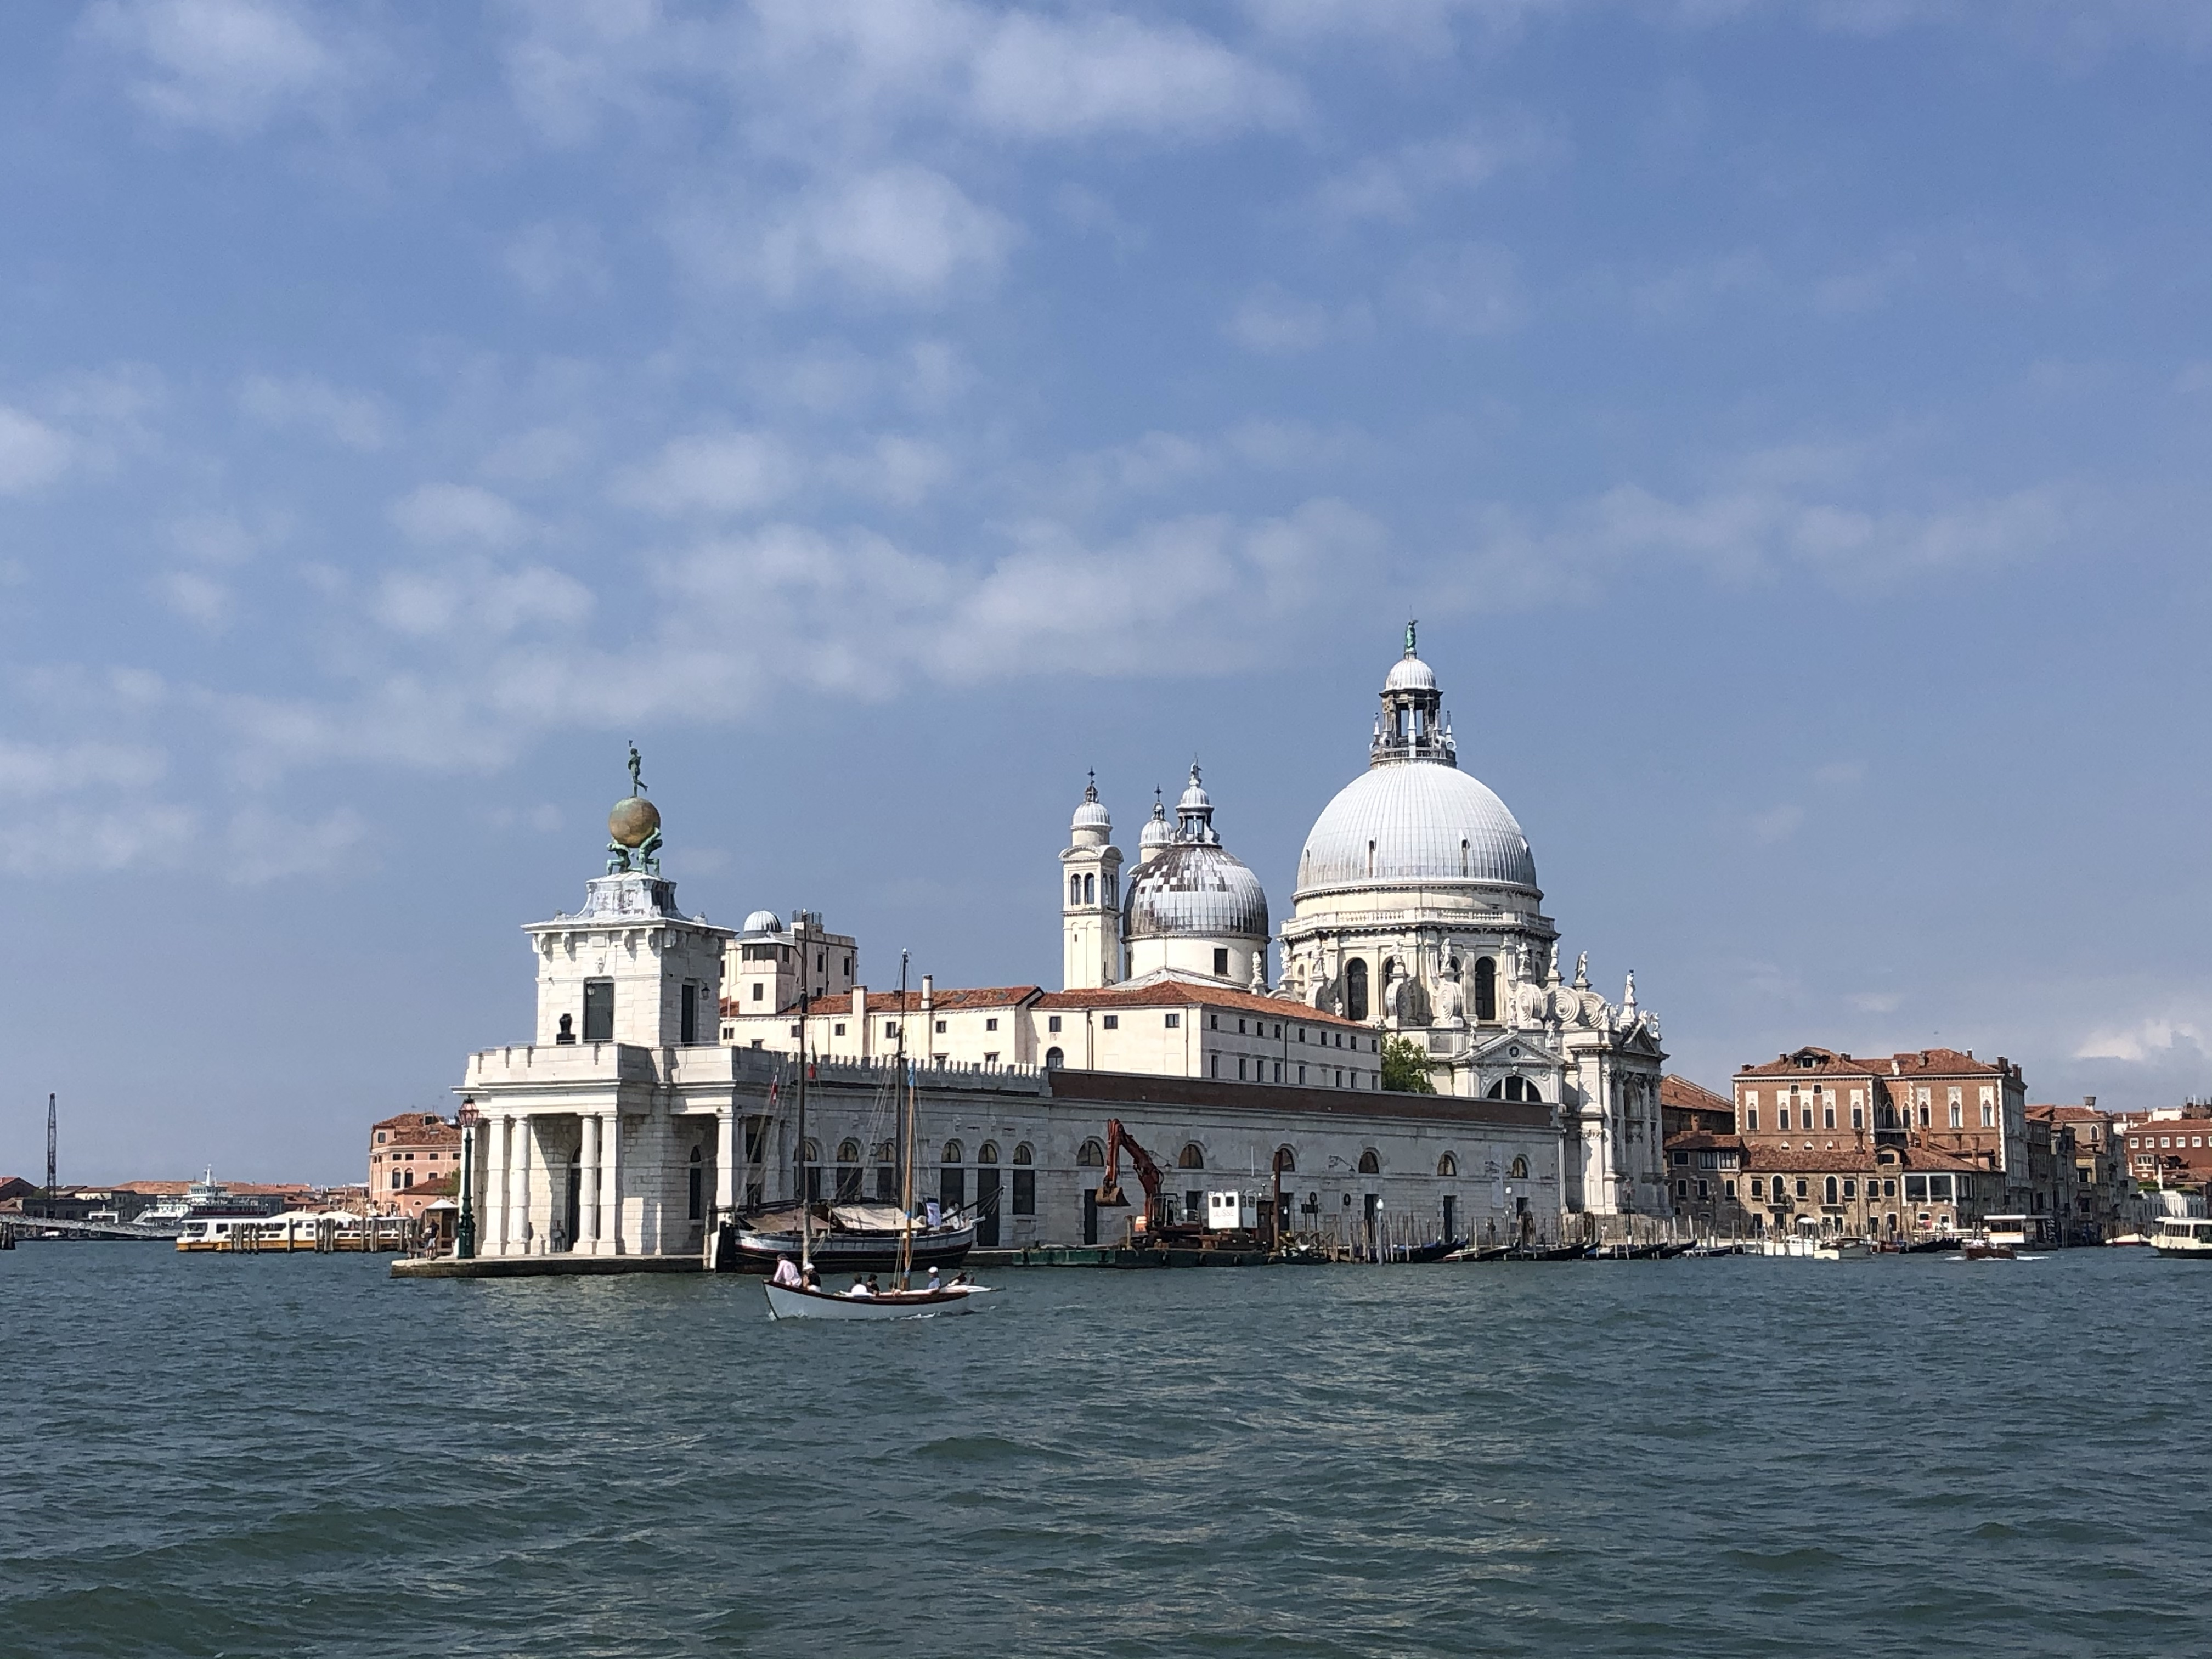 Santa Maria della Salute was built in the 17th century by grateful Venetians who'd survived the plague www.educated-traveller.com